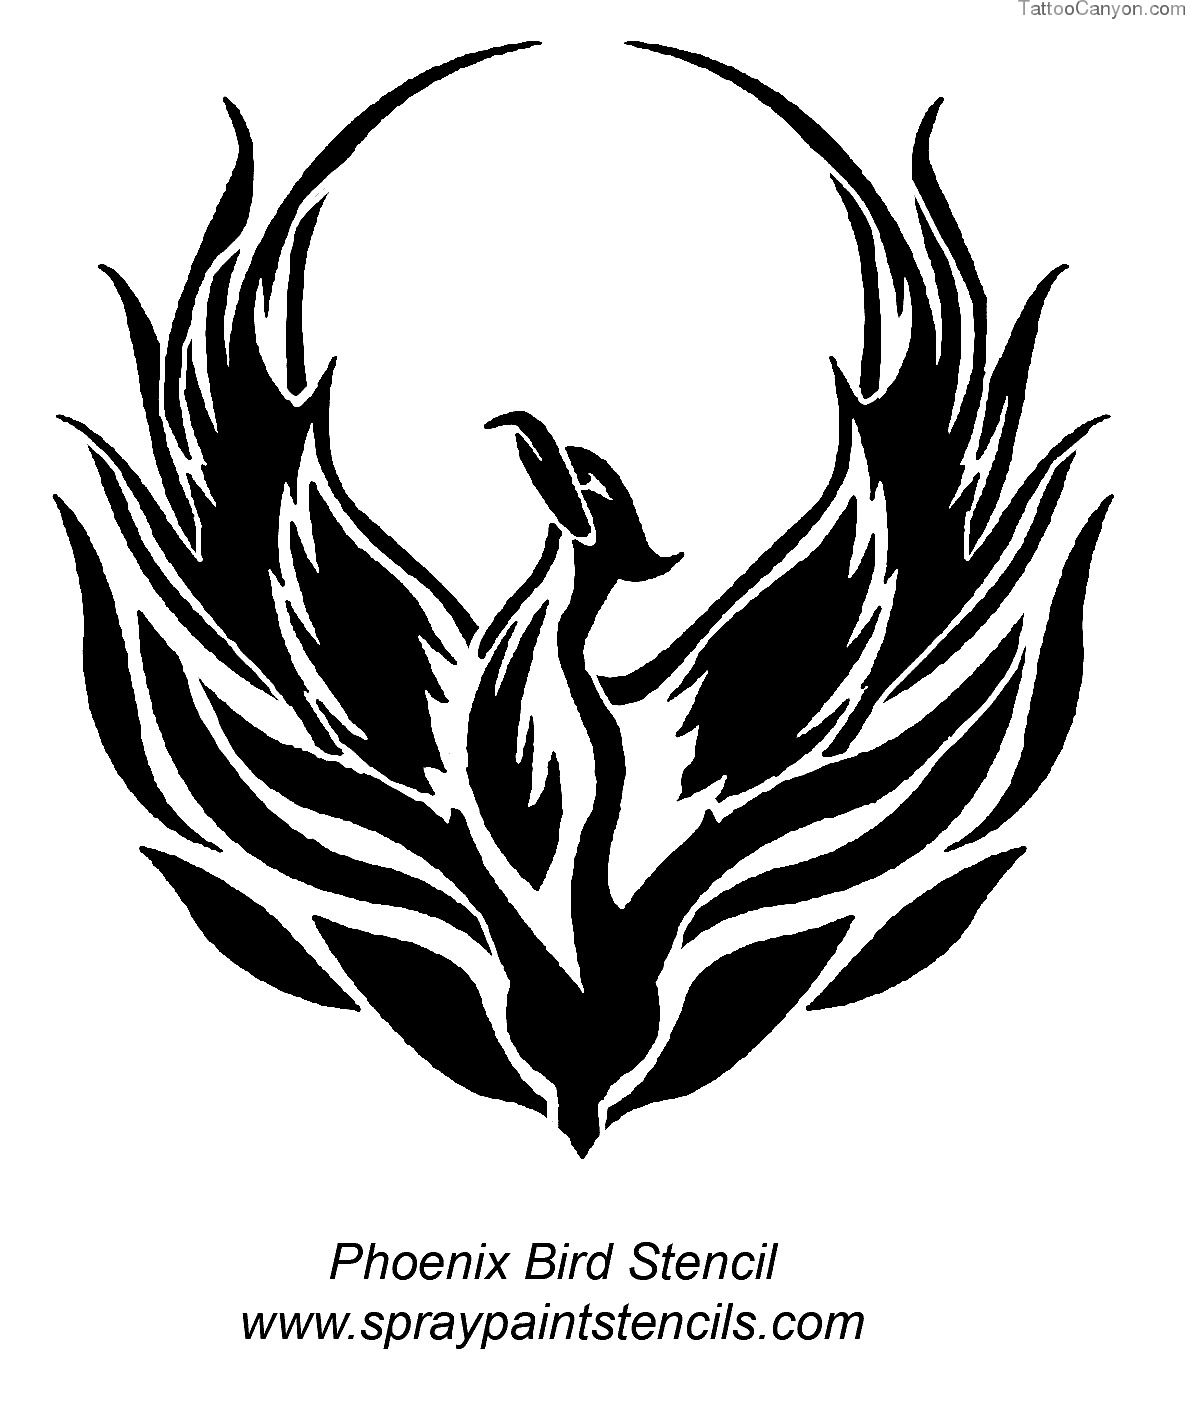 Tattoo Style Stencil Free Download 43224 Phoenix Bird